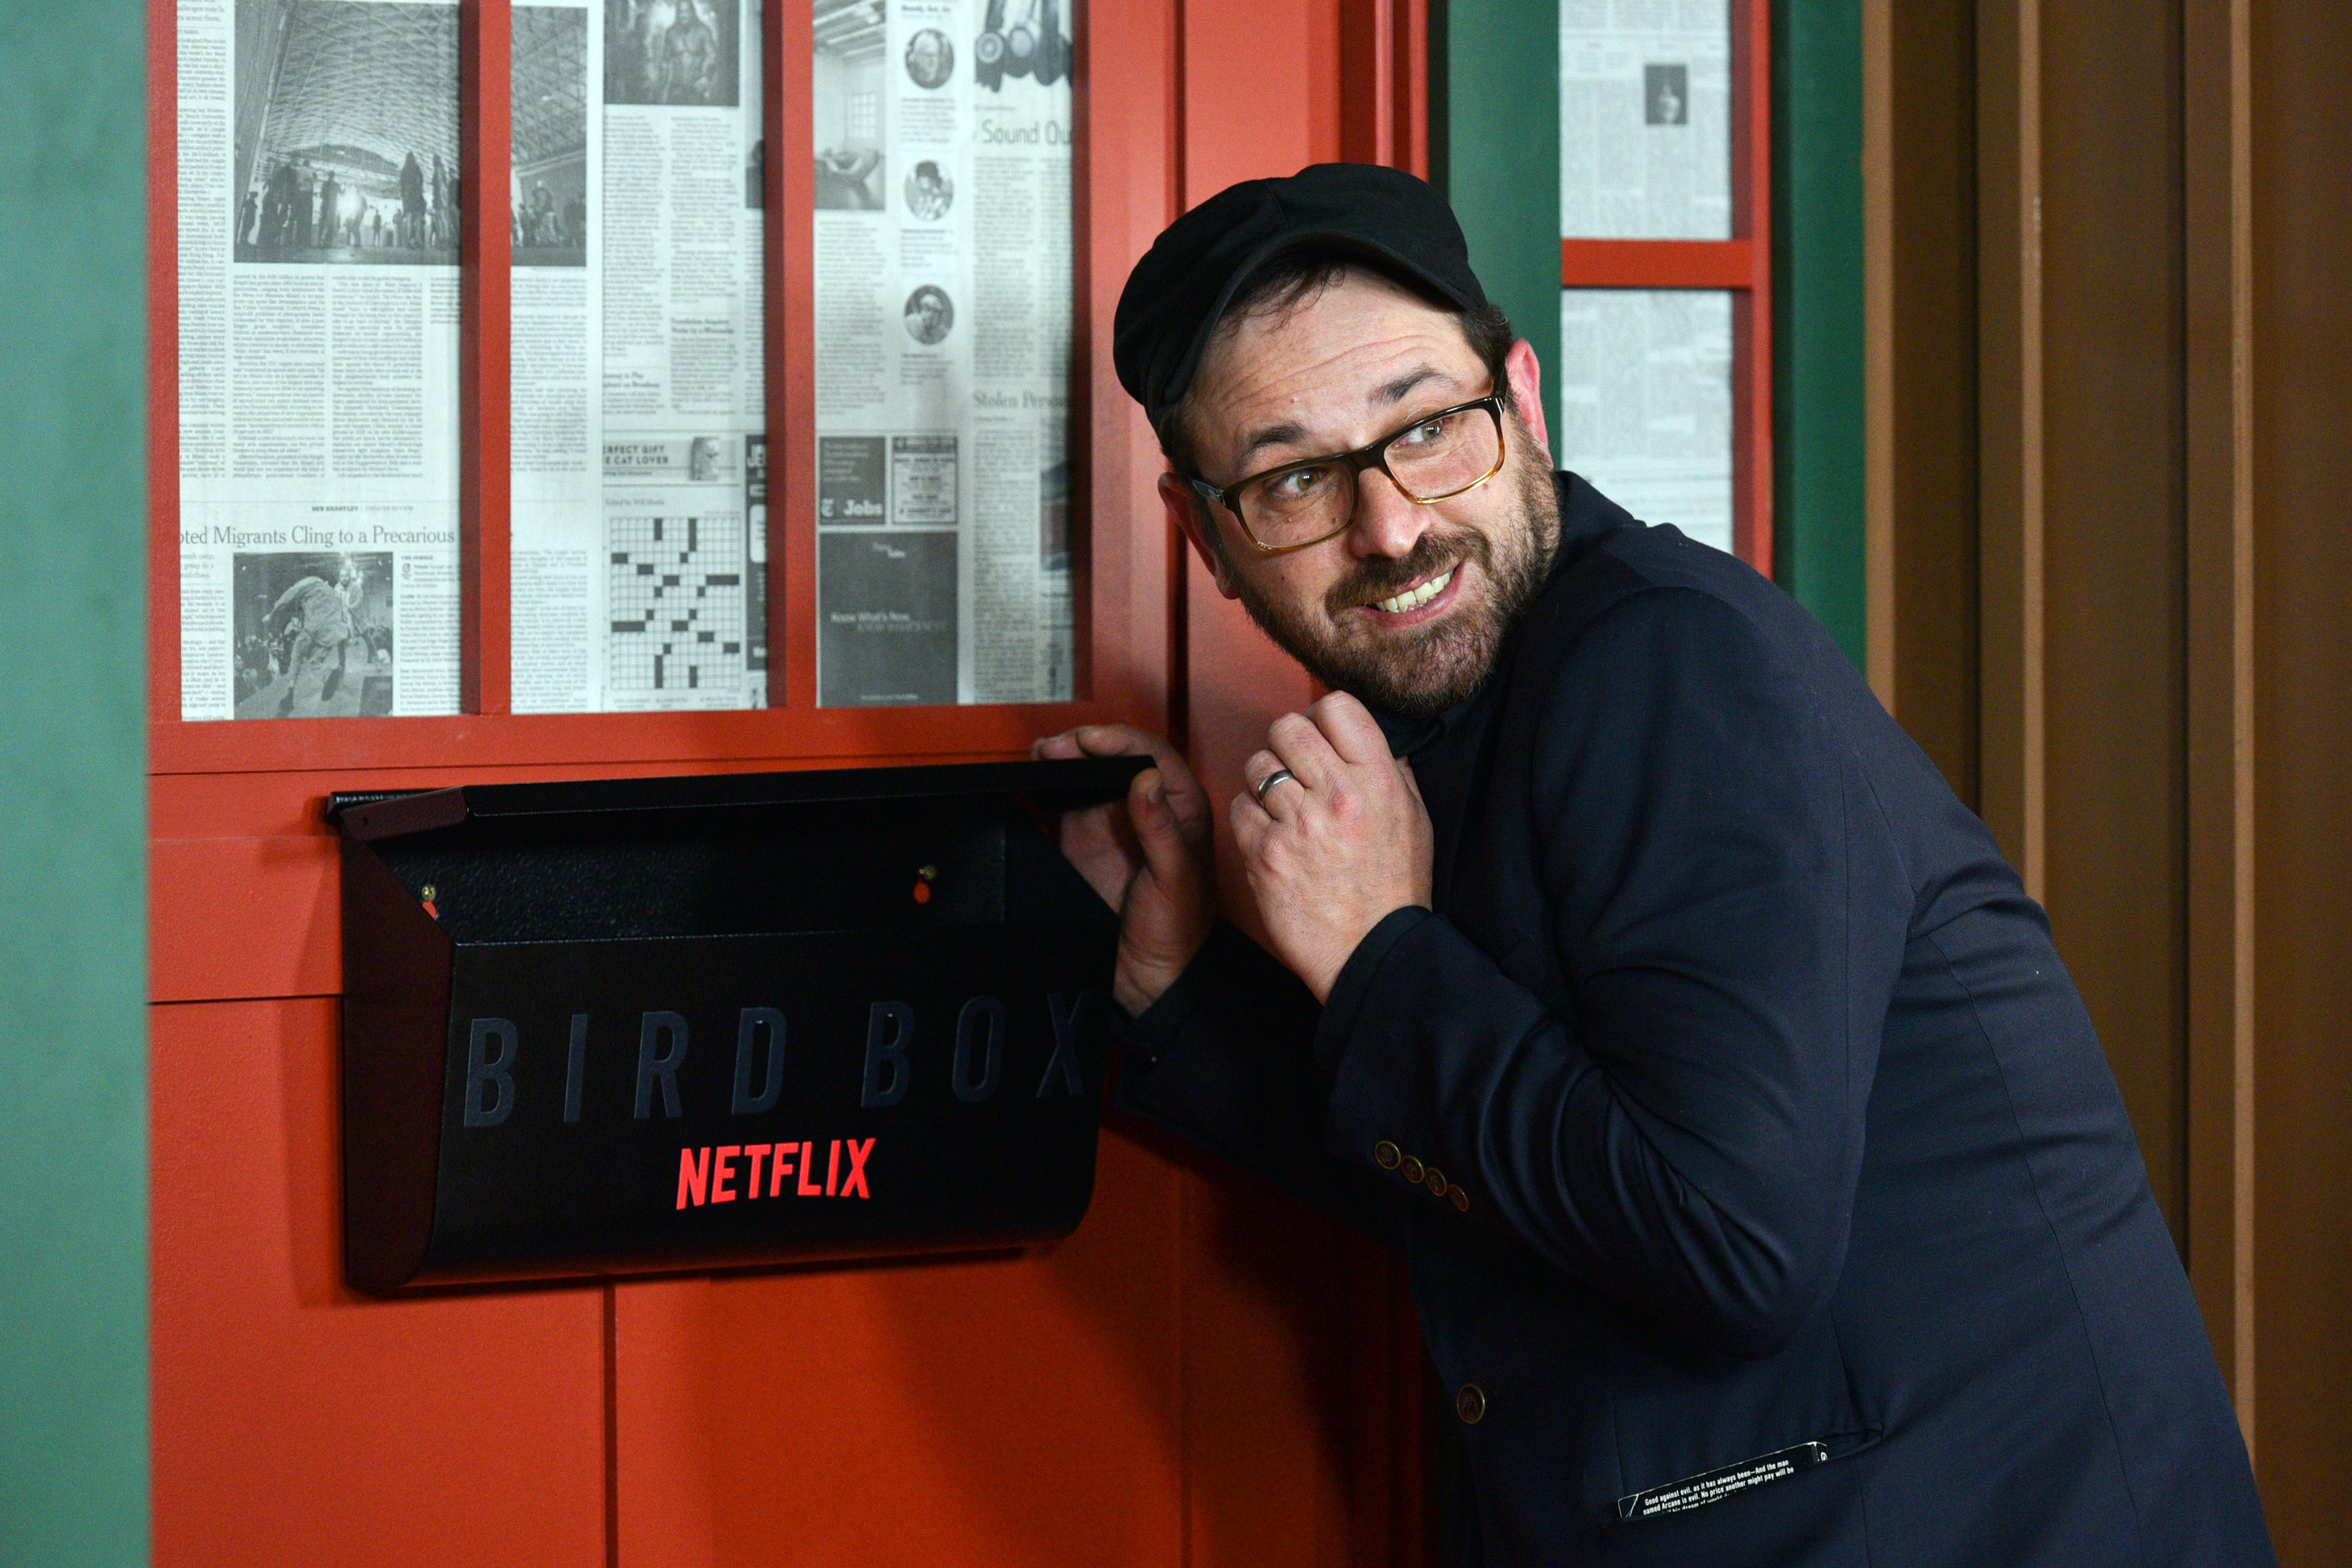 Bird Box': Meet the Indie-Rock Lifer Behind the Netflix Hit